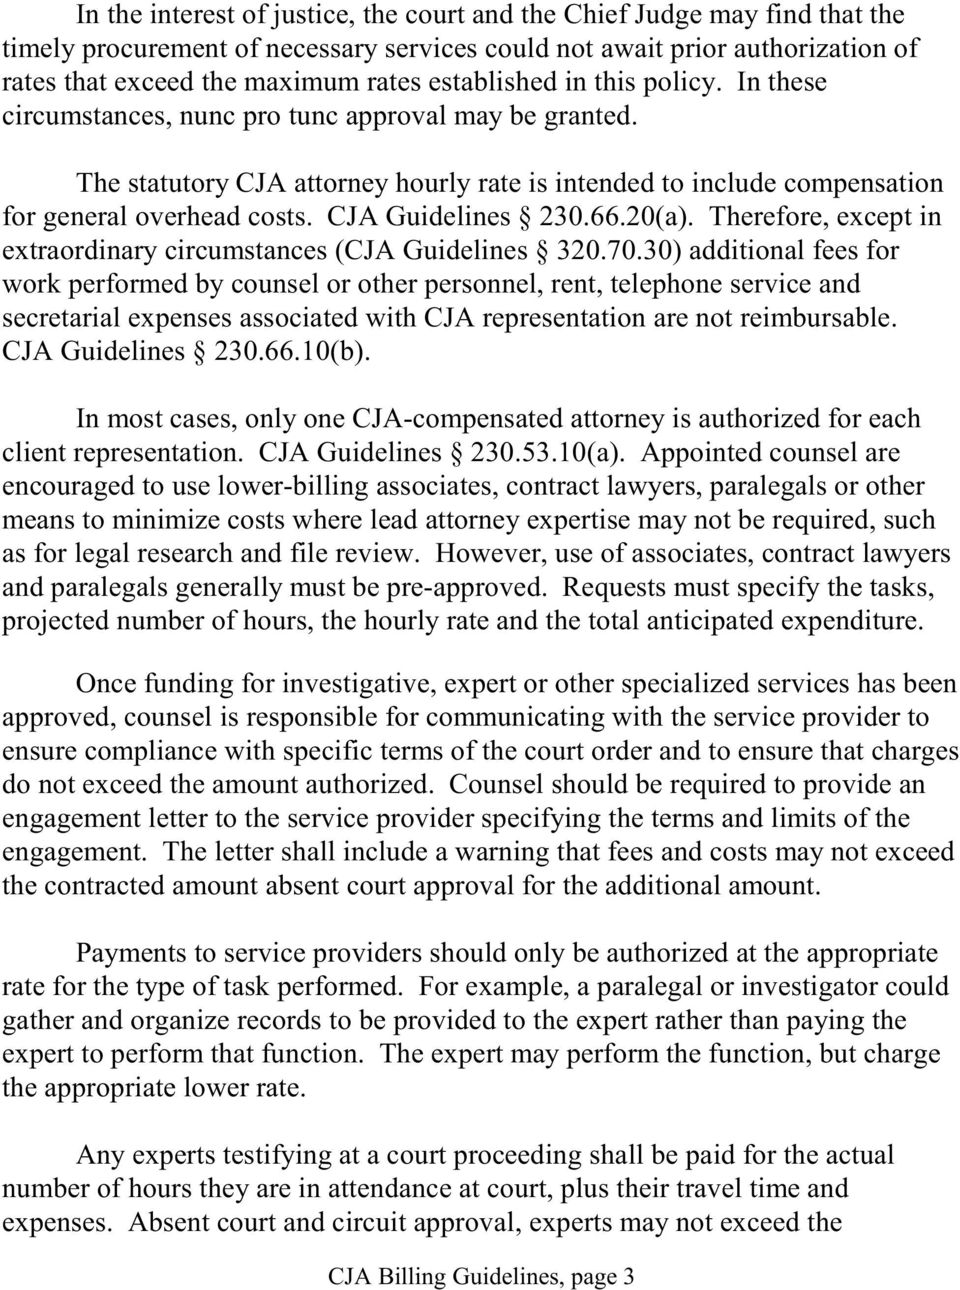 CJA Guidelines 230.66.20(a). Therefore, except in extraordinary circumstances (CJA Guidelines 320.70.